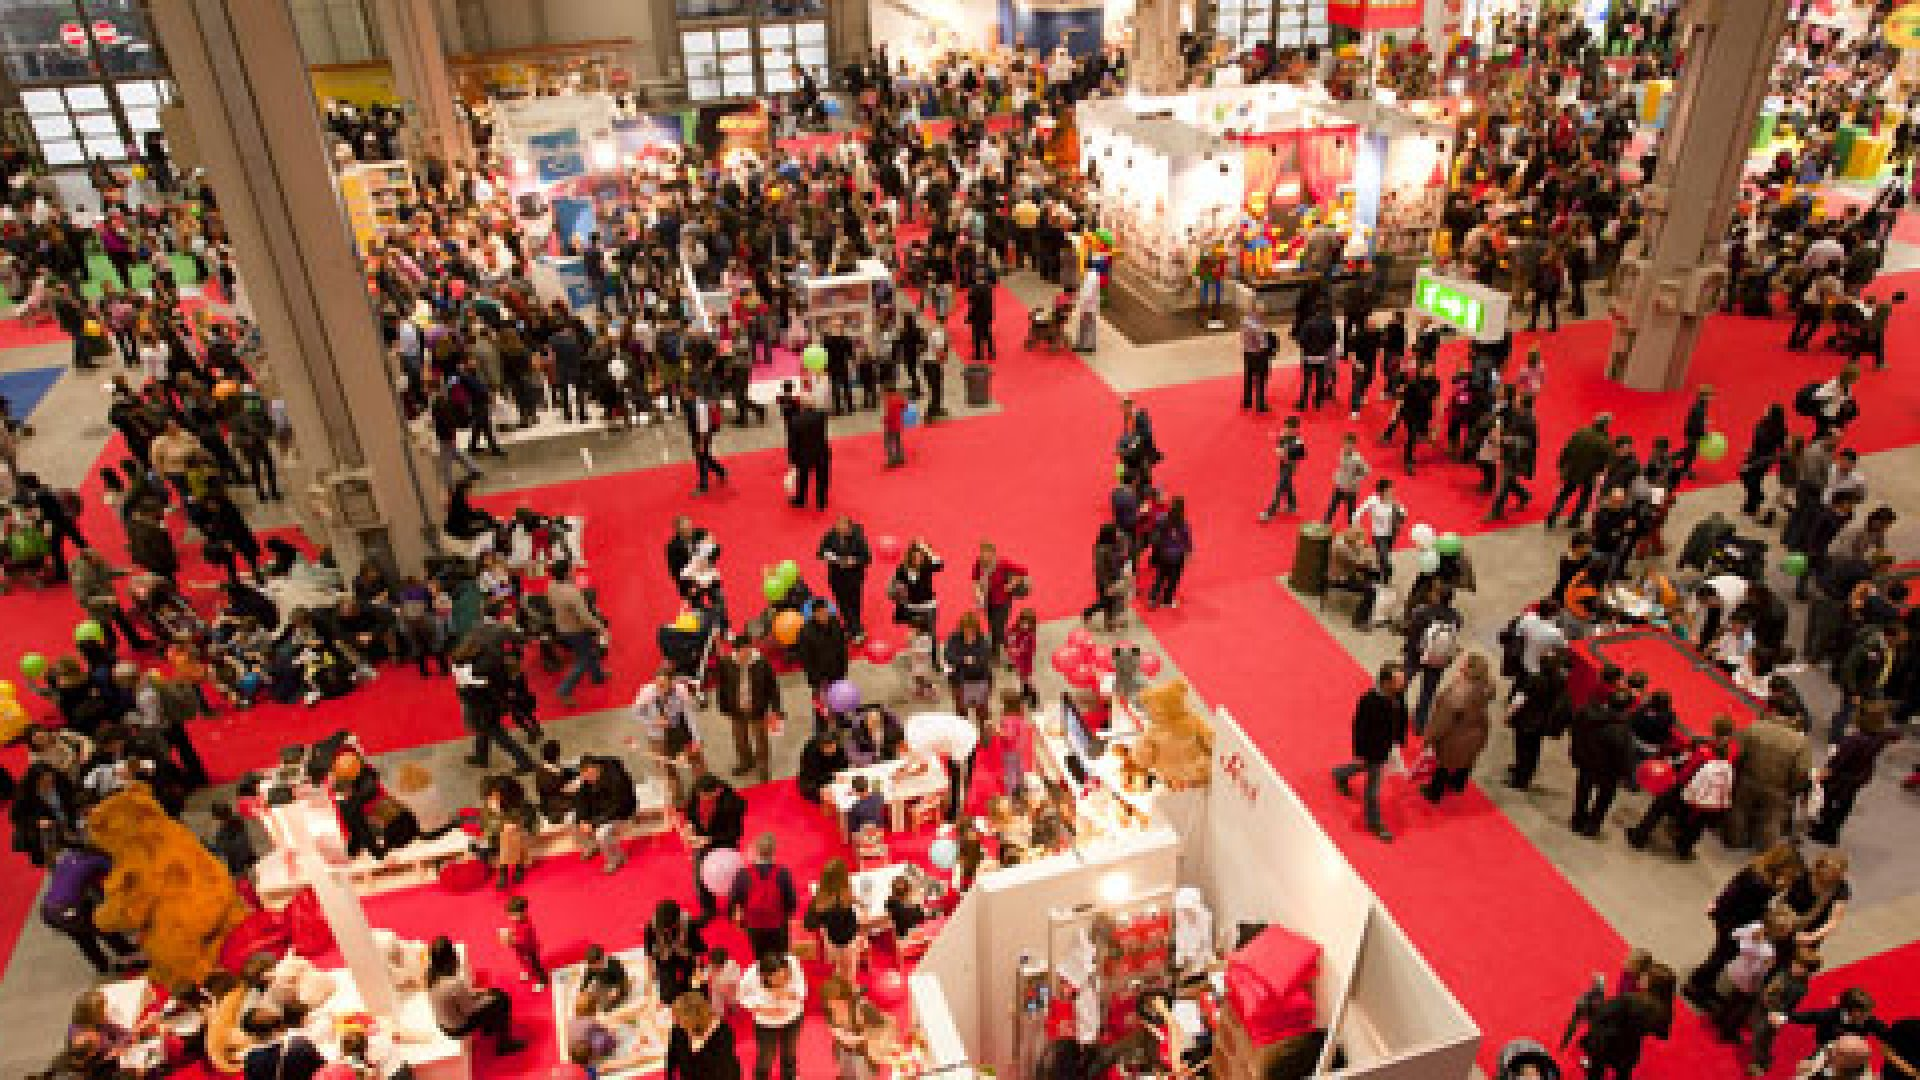 How To Commandeer a Trade Show: 4 Tips